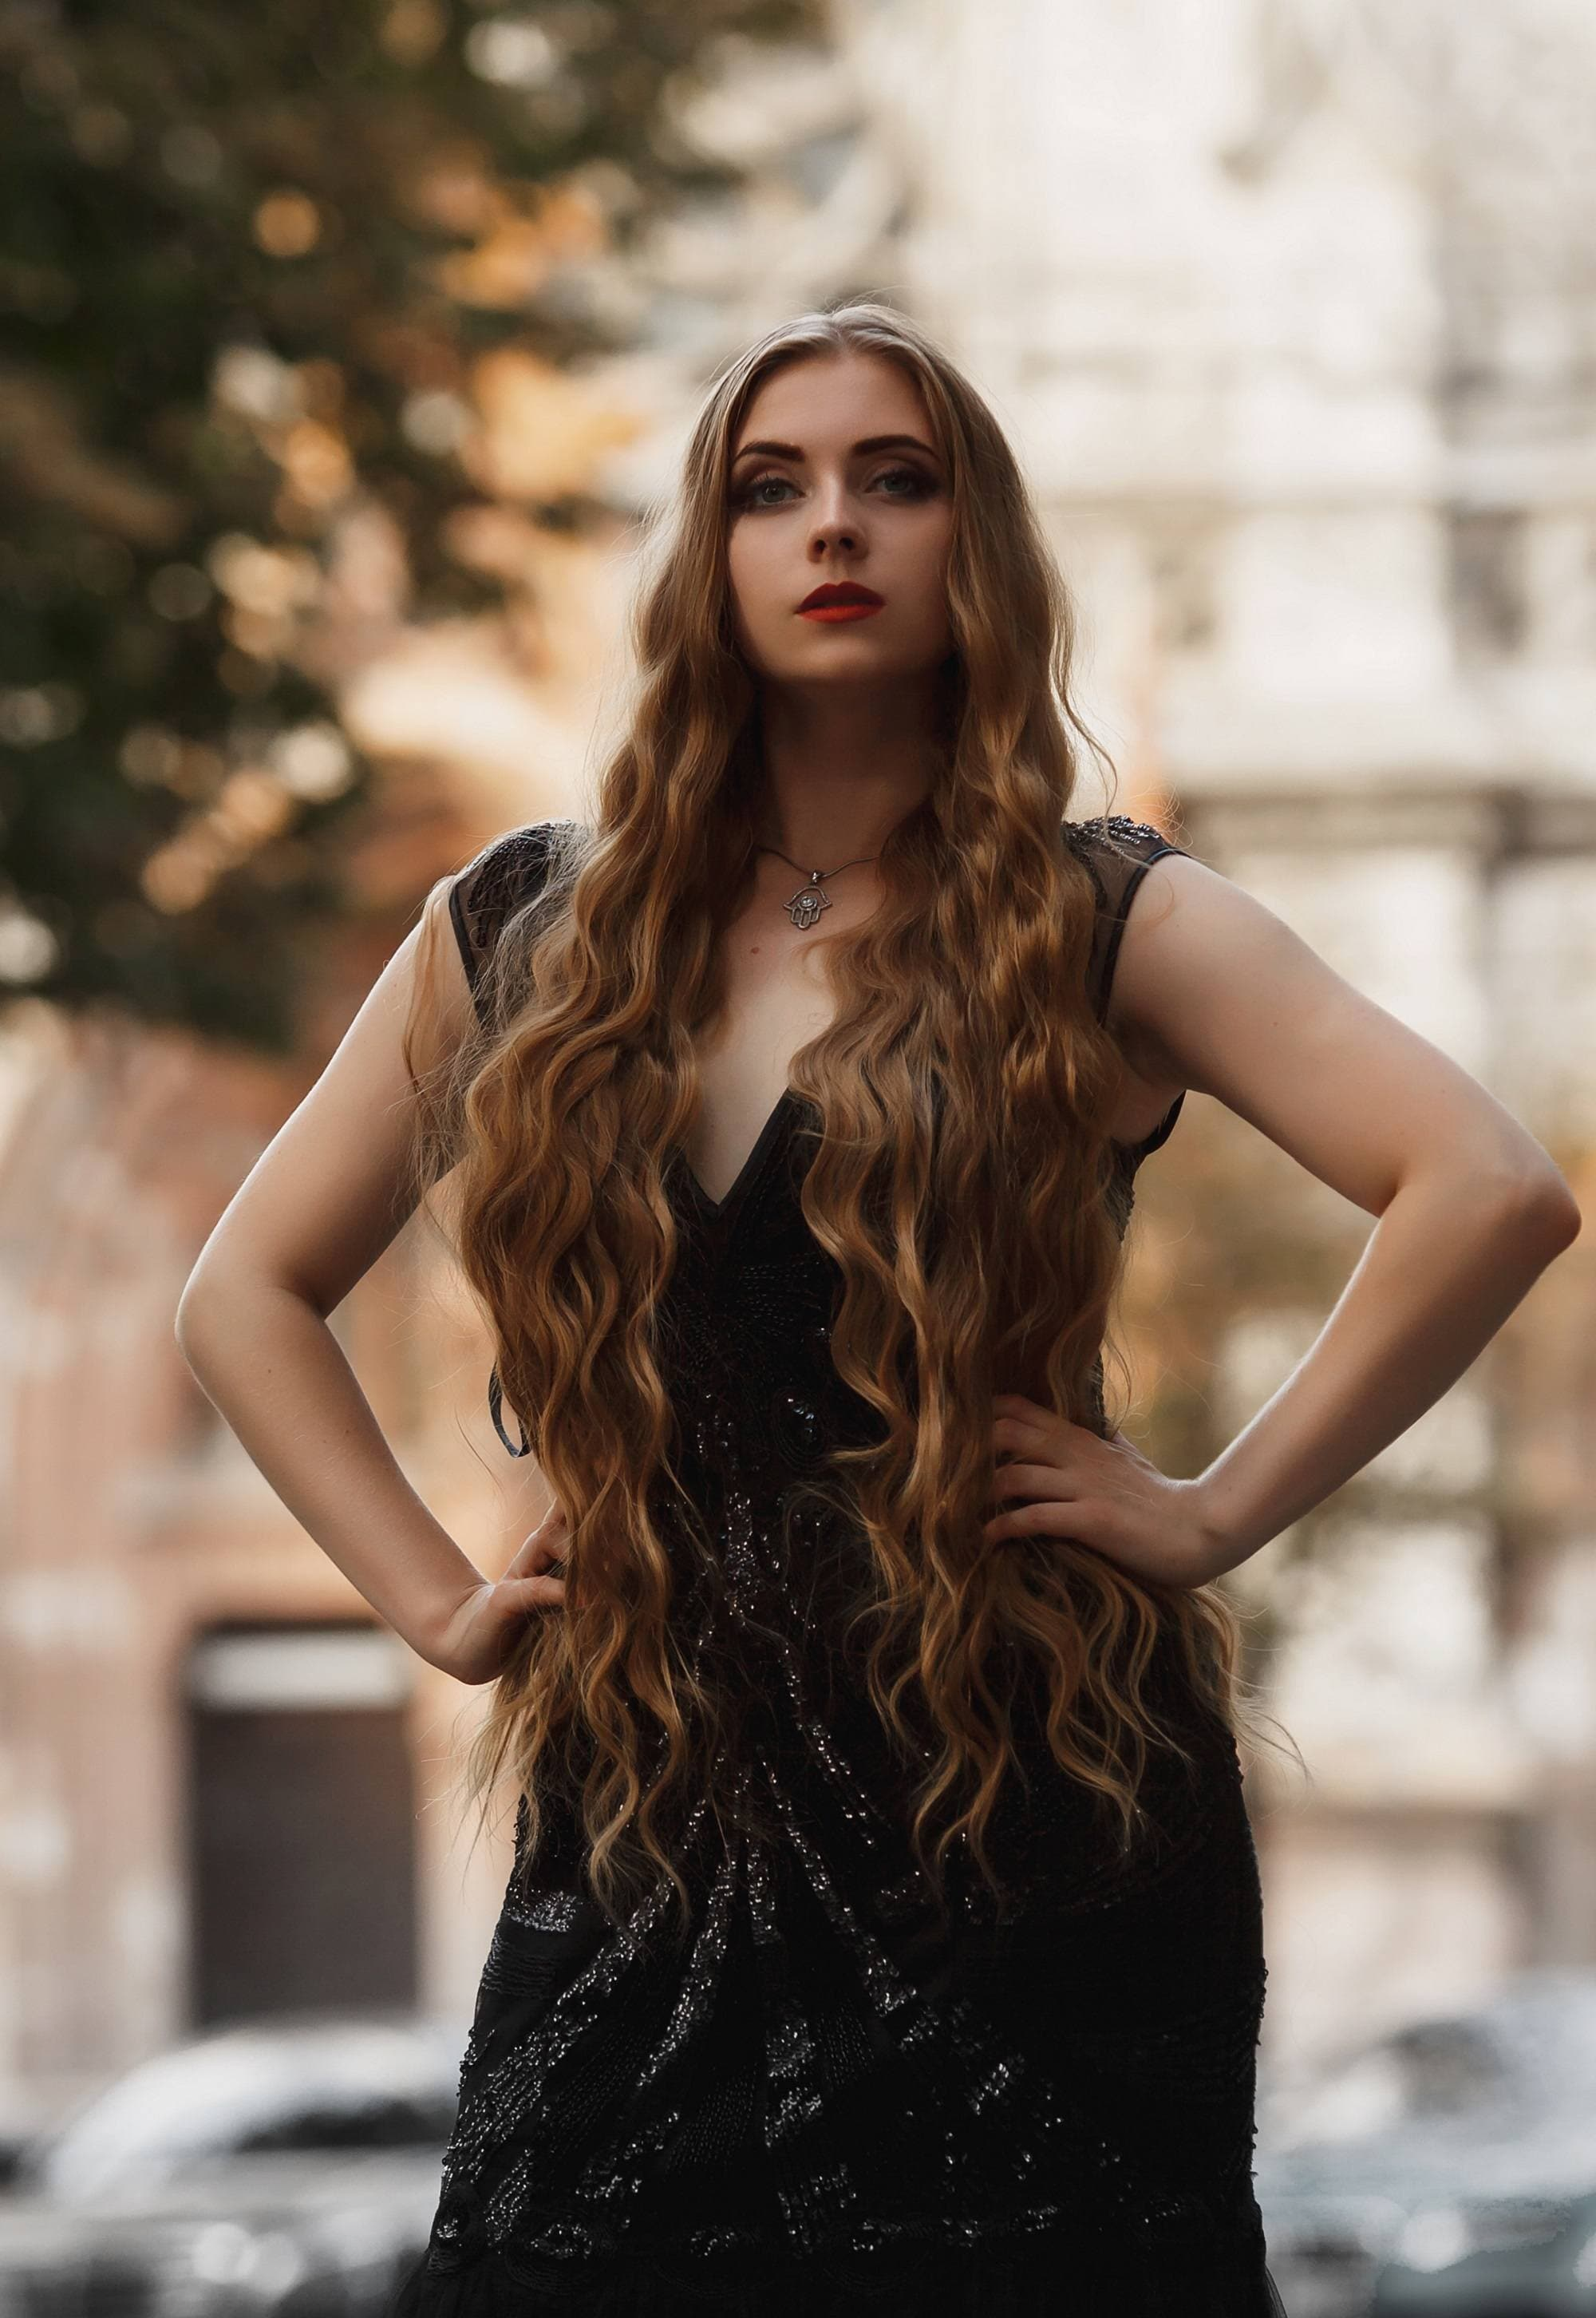 Halloween glam hair: Woman with long brownish blonde wavy hair, wearing a black dress, with hands on her hips in outdoor location